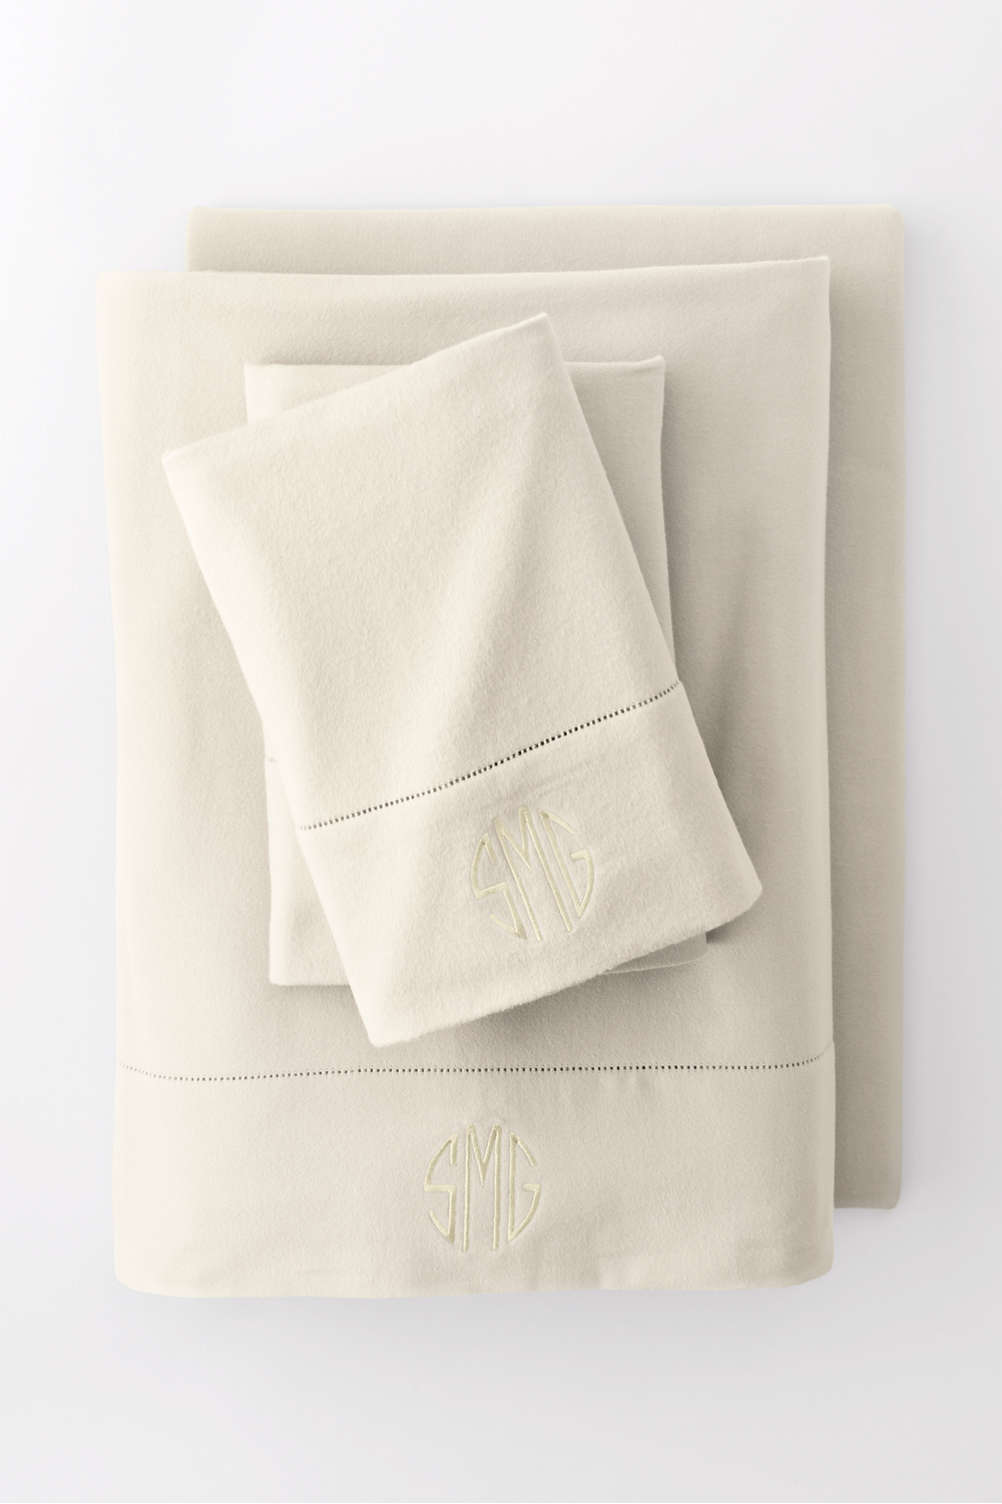 6oz Supima Flannel Sheet Set from Lands' End